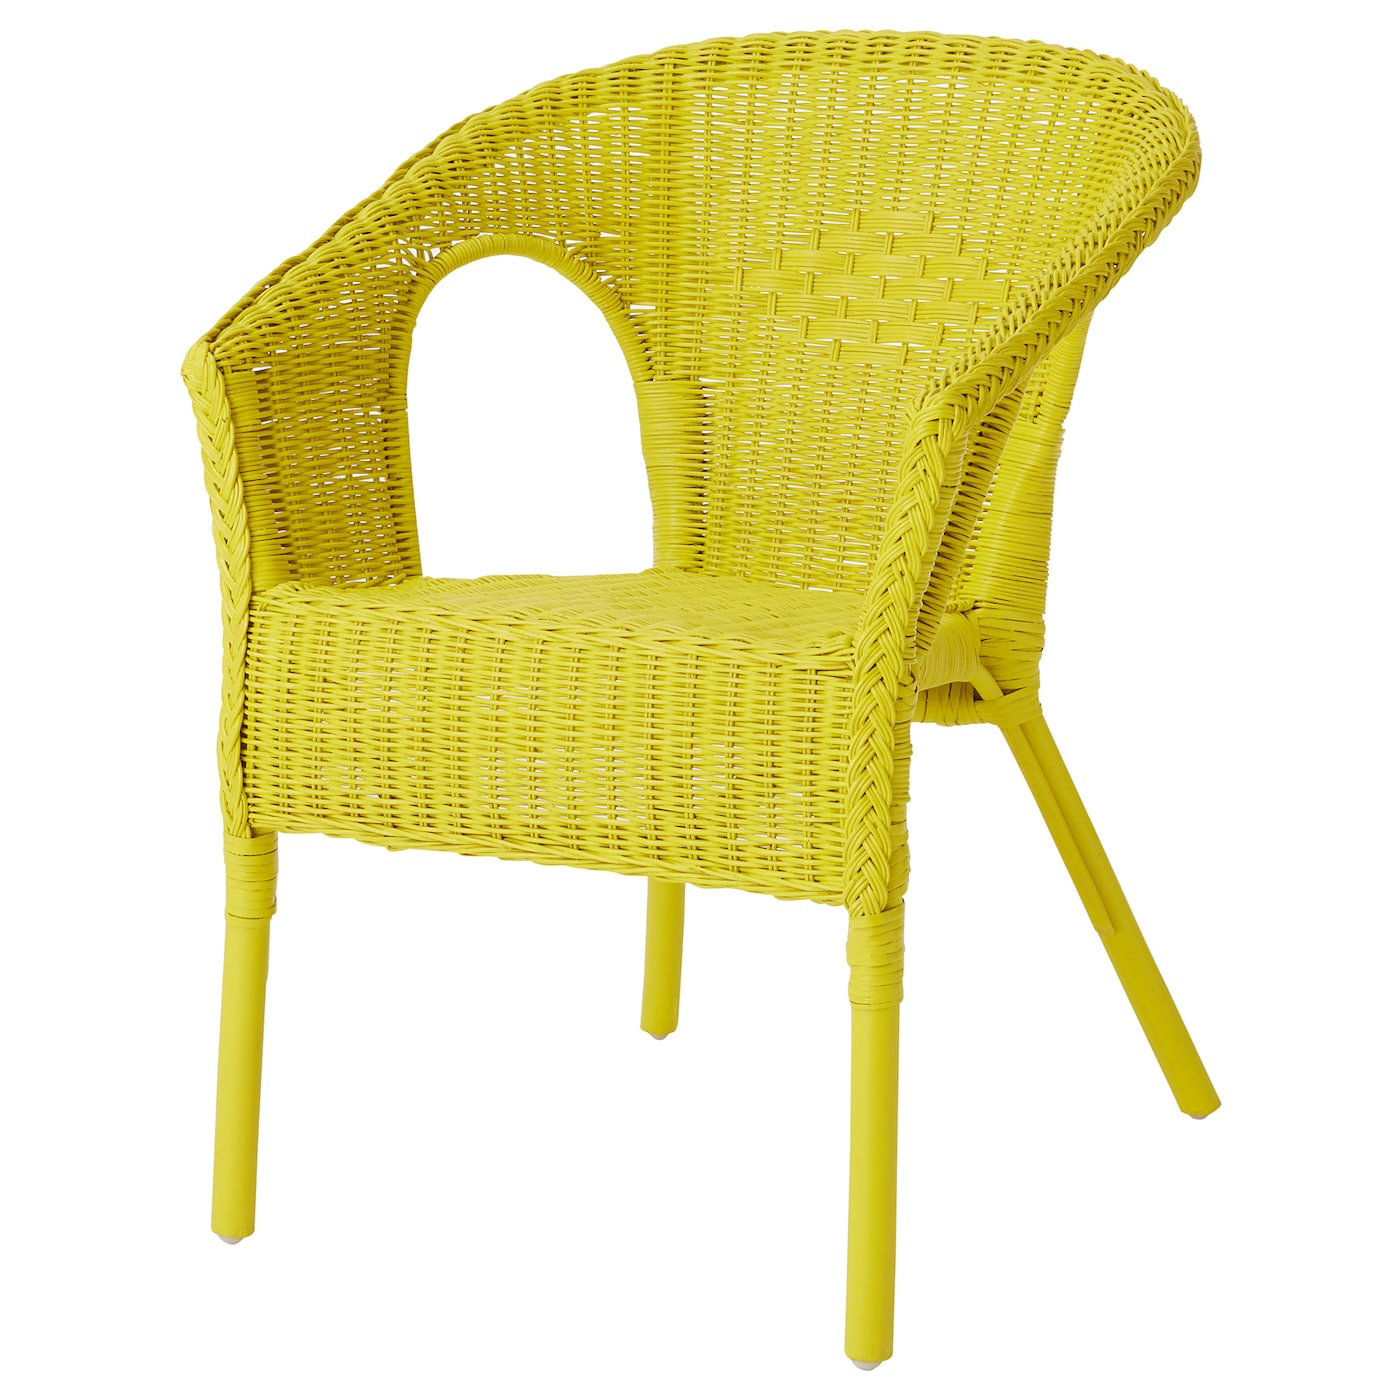 Captivating IKEA AGEN Chair The Furniture Is Hand Woven And Therefore Unique.